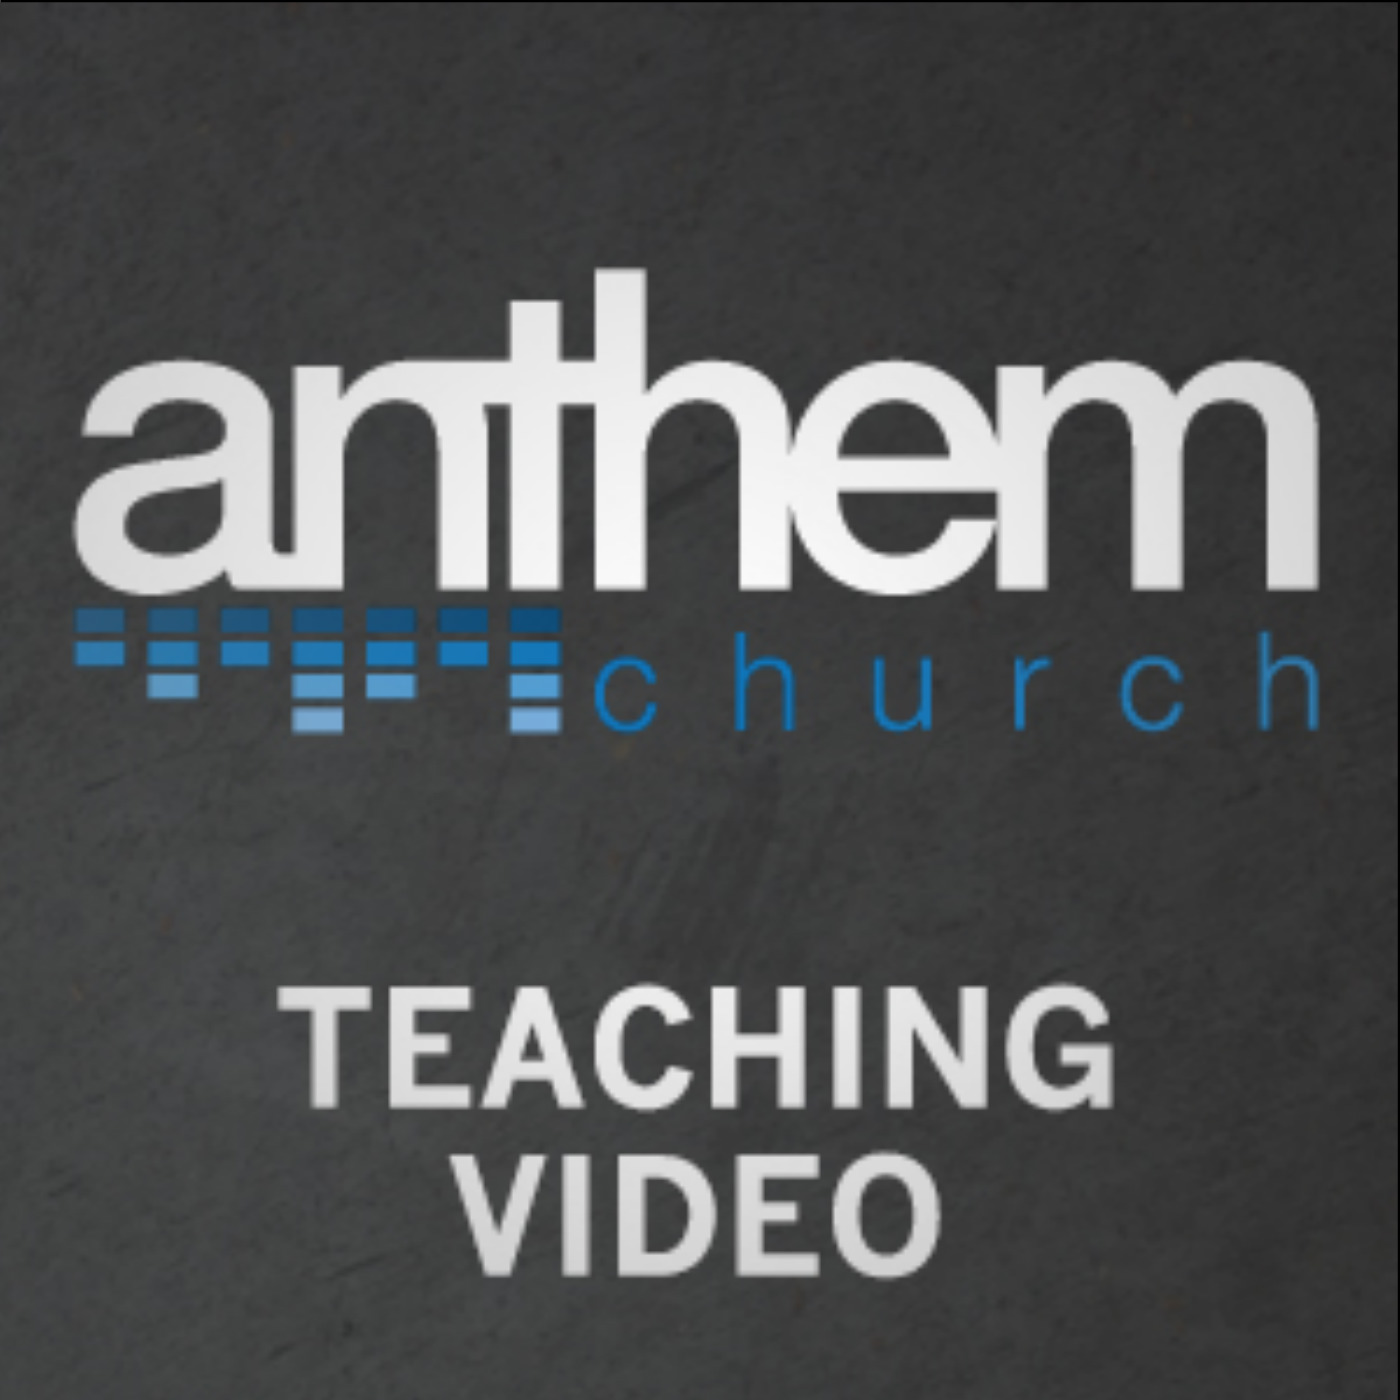 Anthem Church Teaching Video